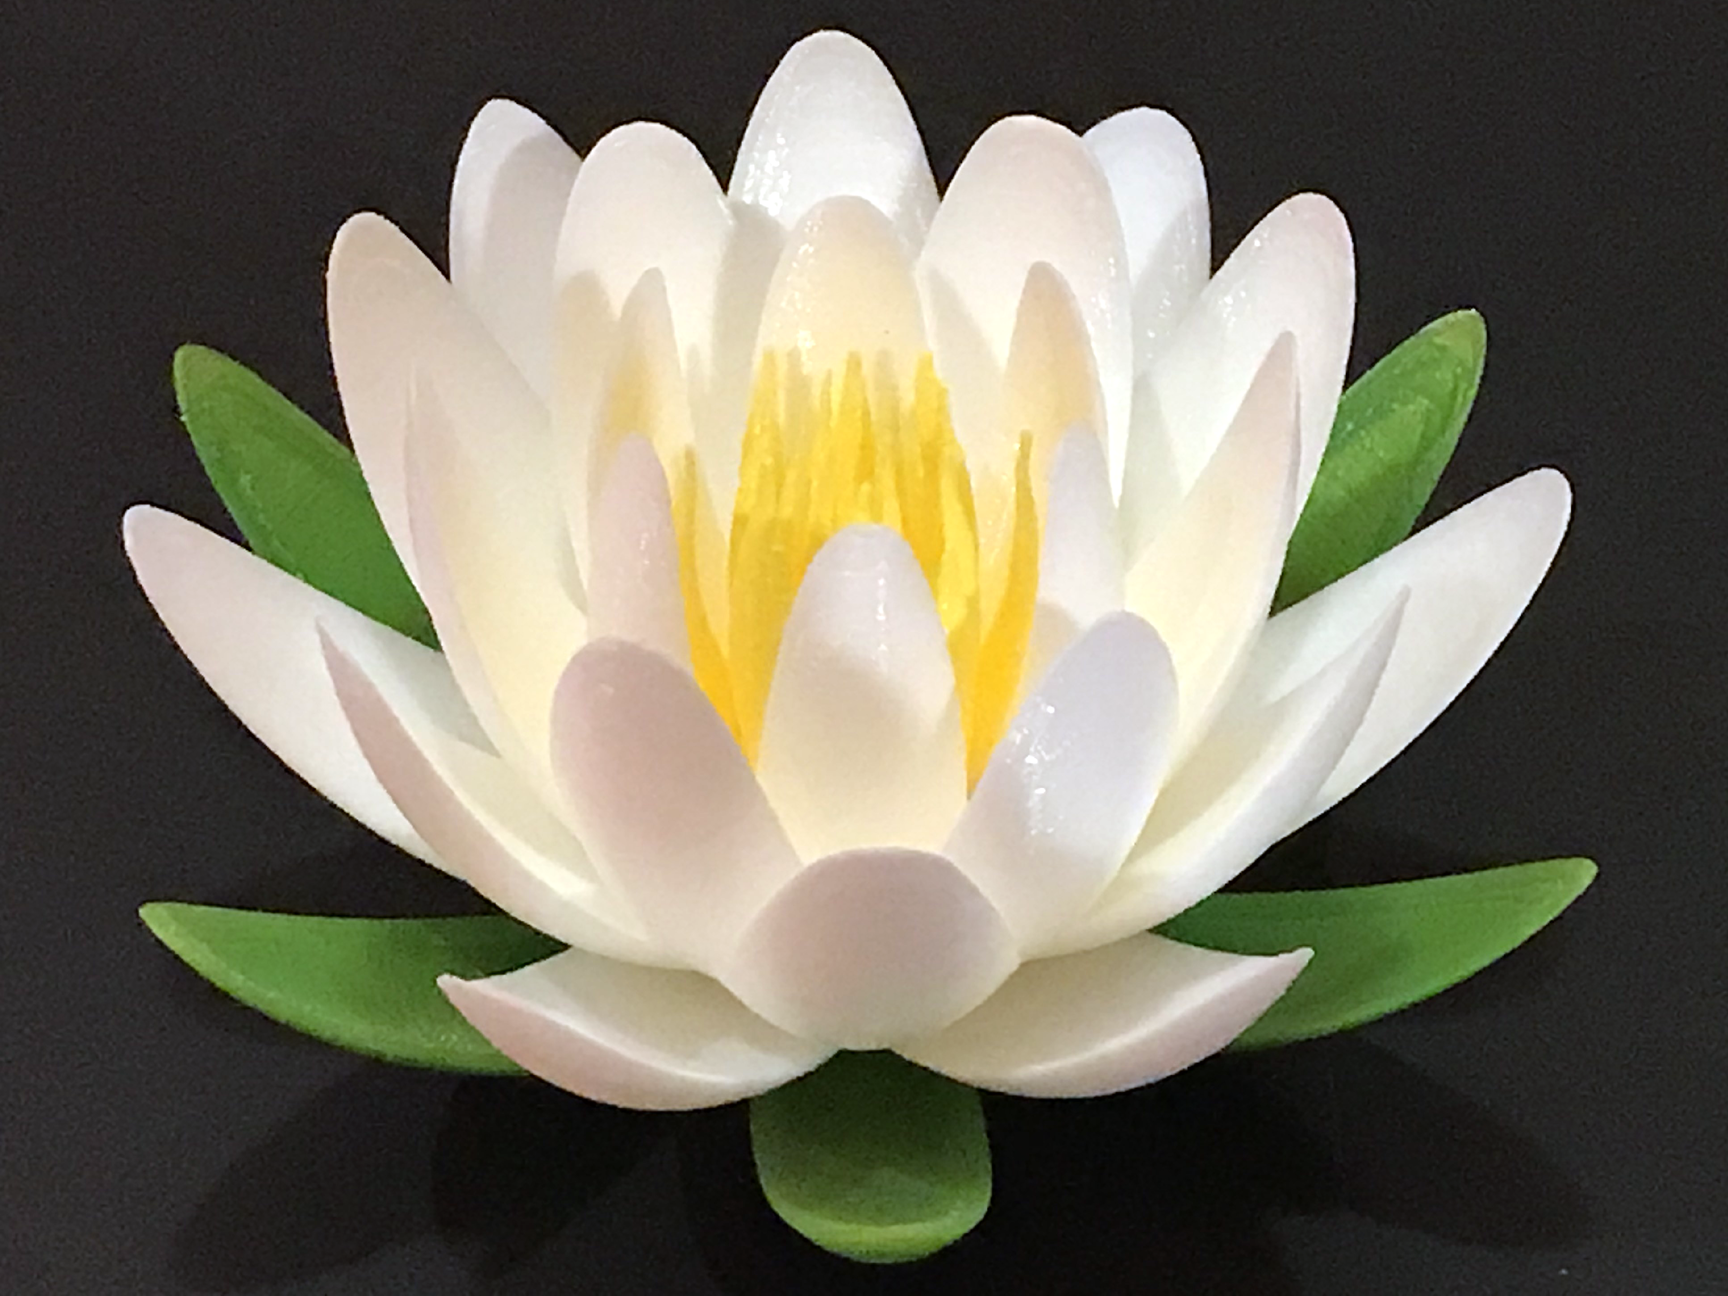 Water Lily Or Lotus Flower By Shepler007 Thingiverse